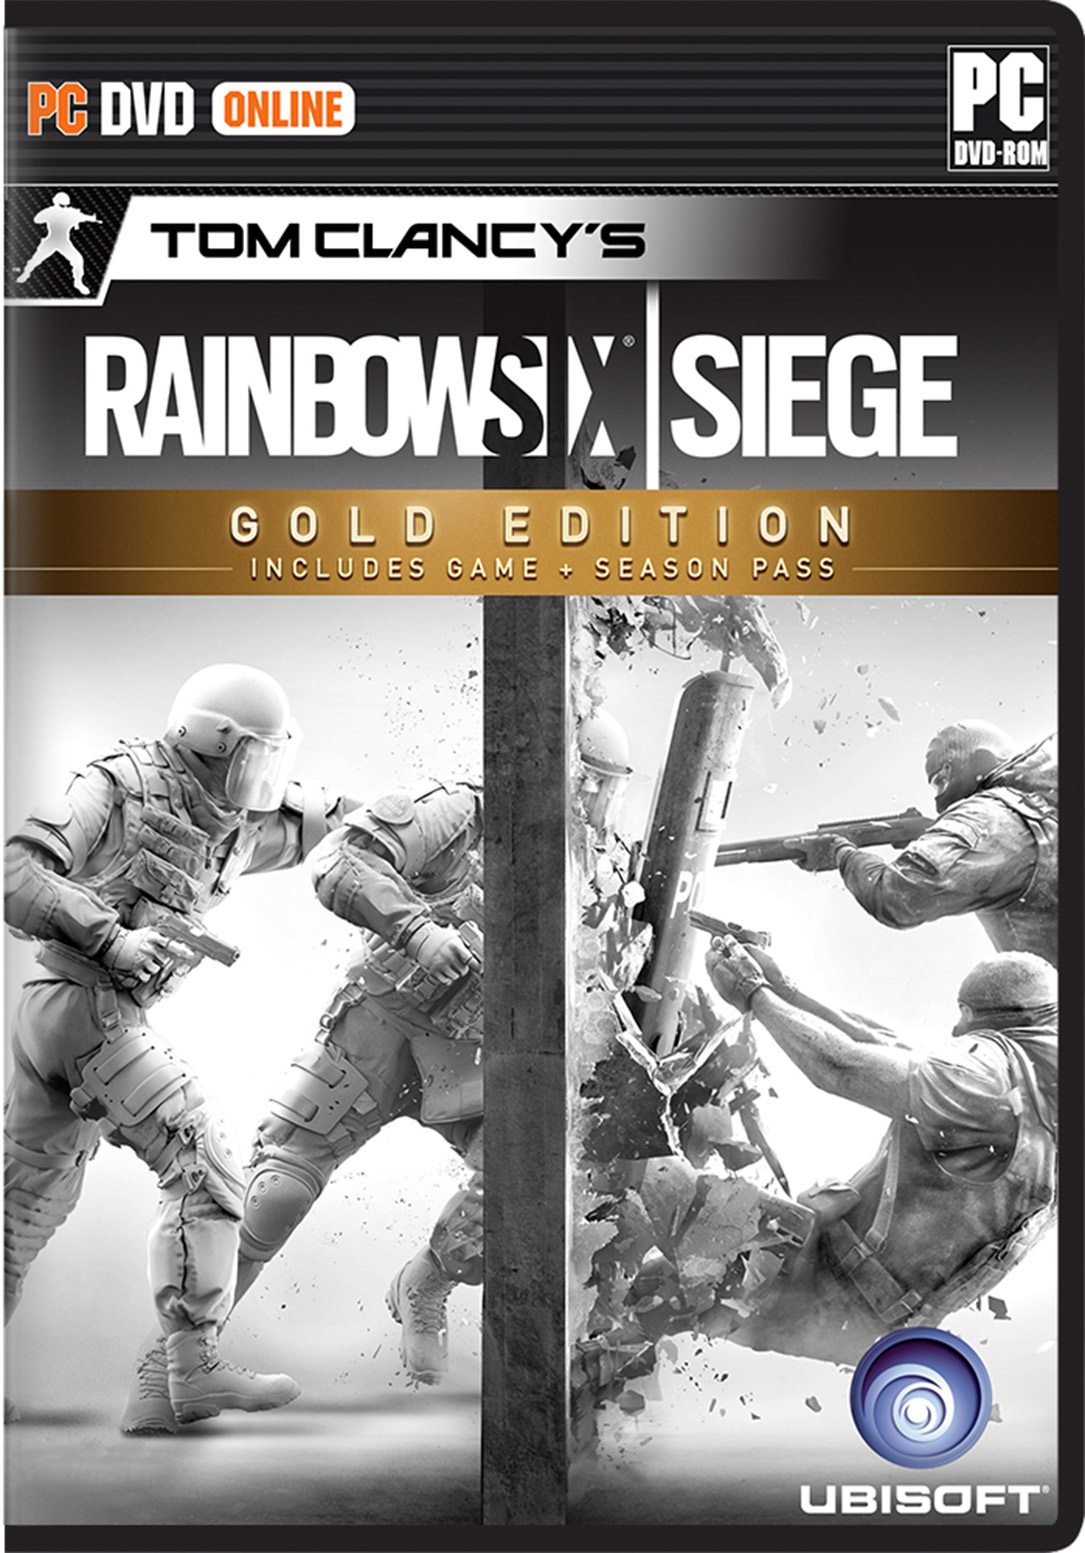 Tom Clancy's Rainbow Six Siege Gold Edition PC Game Deal